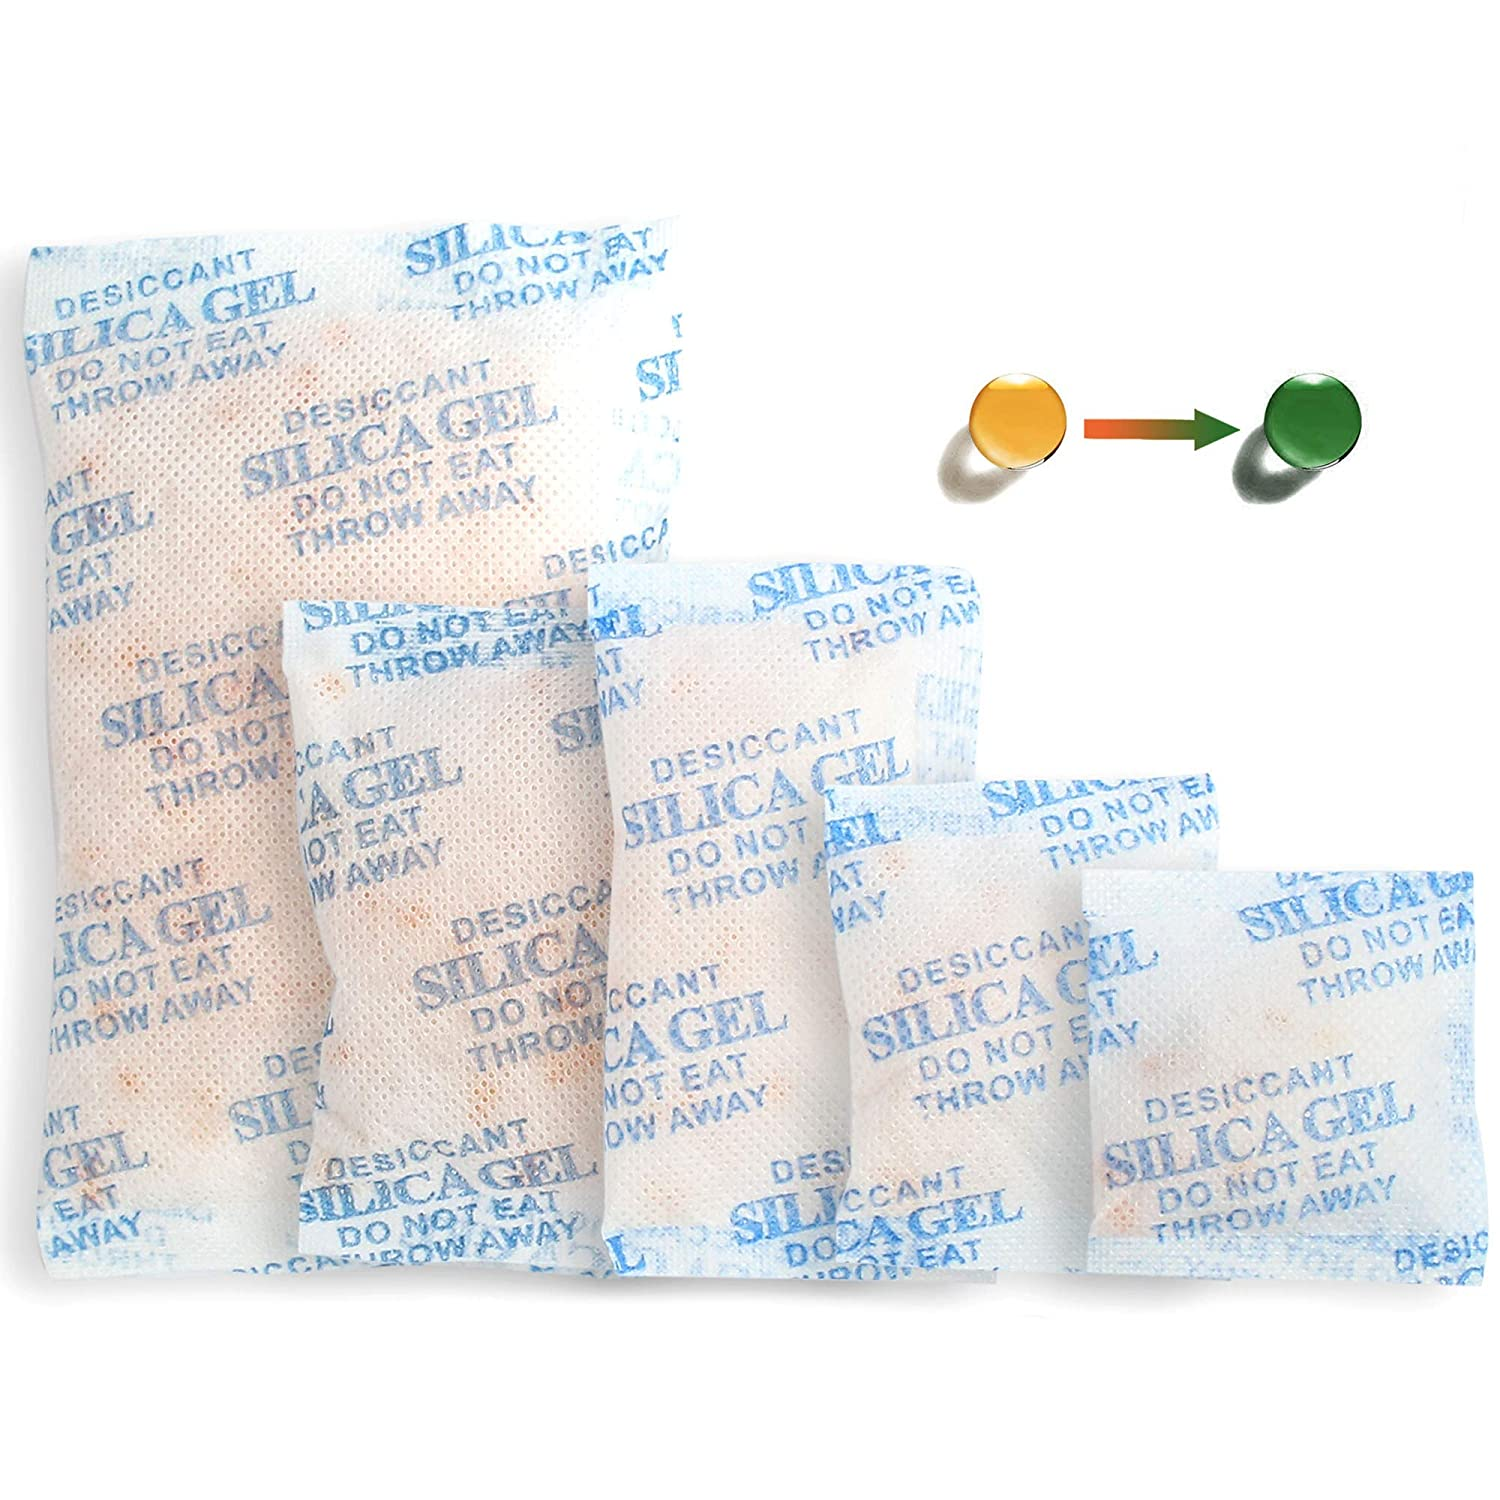 100Packs Mixed Indicating Silica Gel Packets, (3-50g) Rechargeable Desiccant Packets and Dehumidifier with Orange Color Indicating, Food Safe Silica Gel for Moisture Abosrber